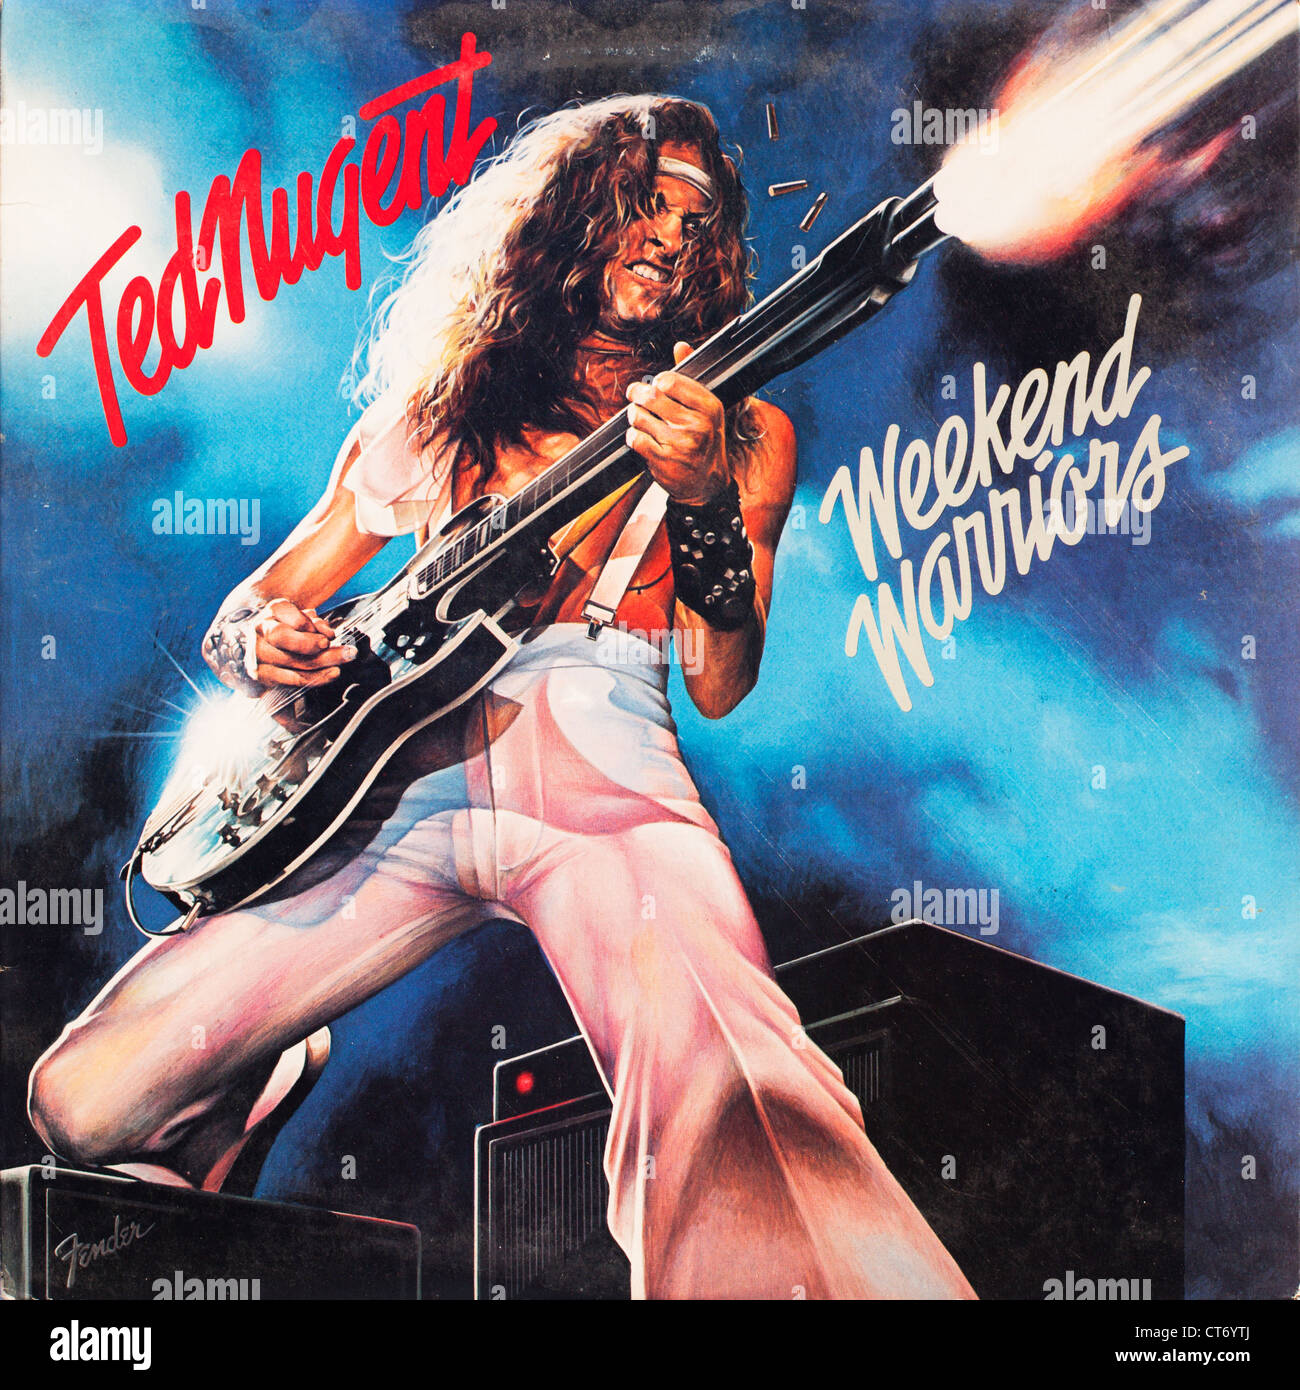 Weekend Warriors Vinyl Record Album Cover From The